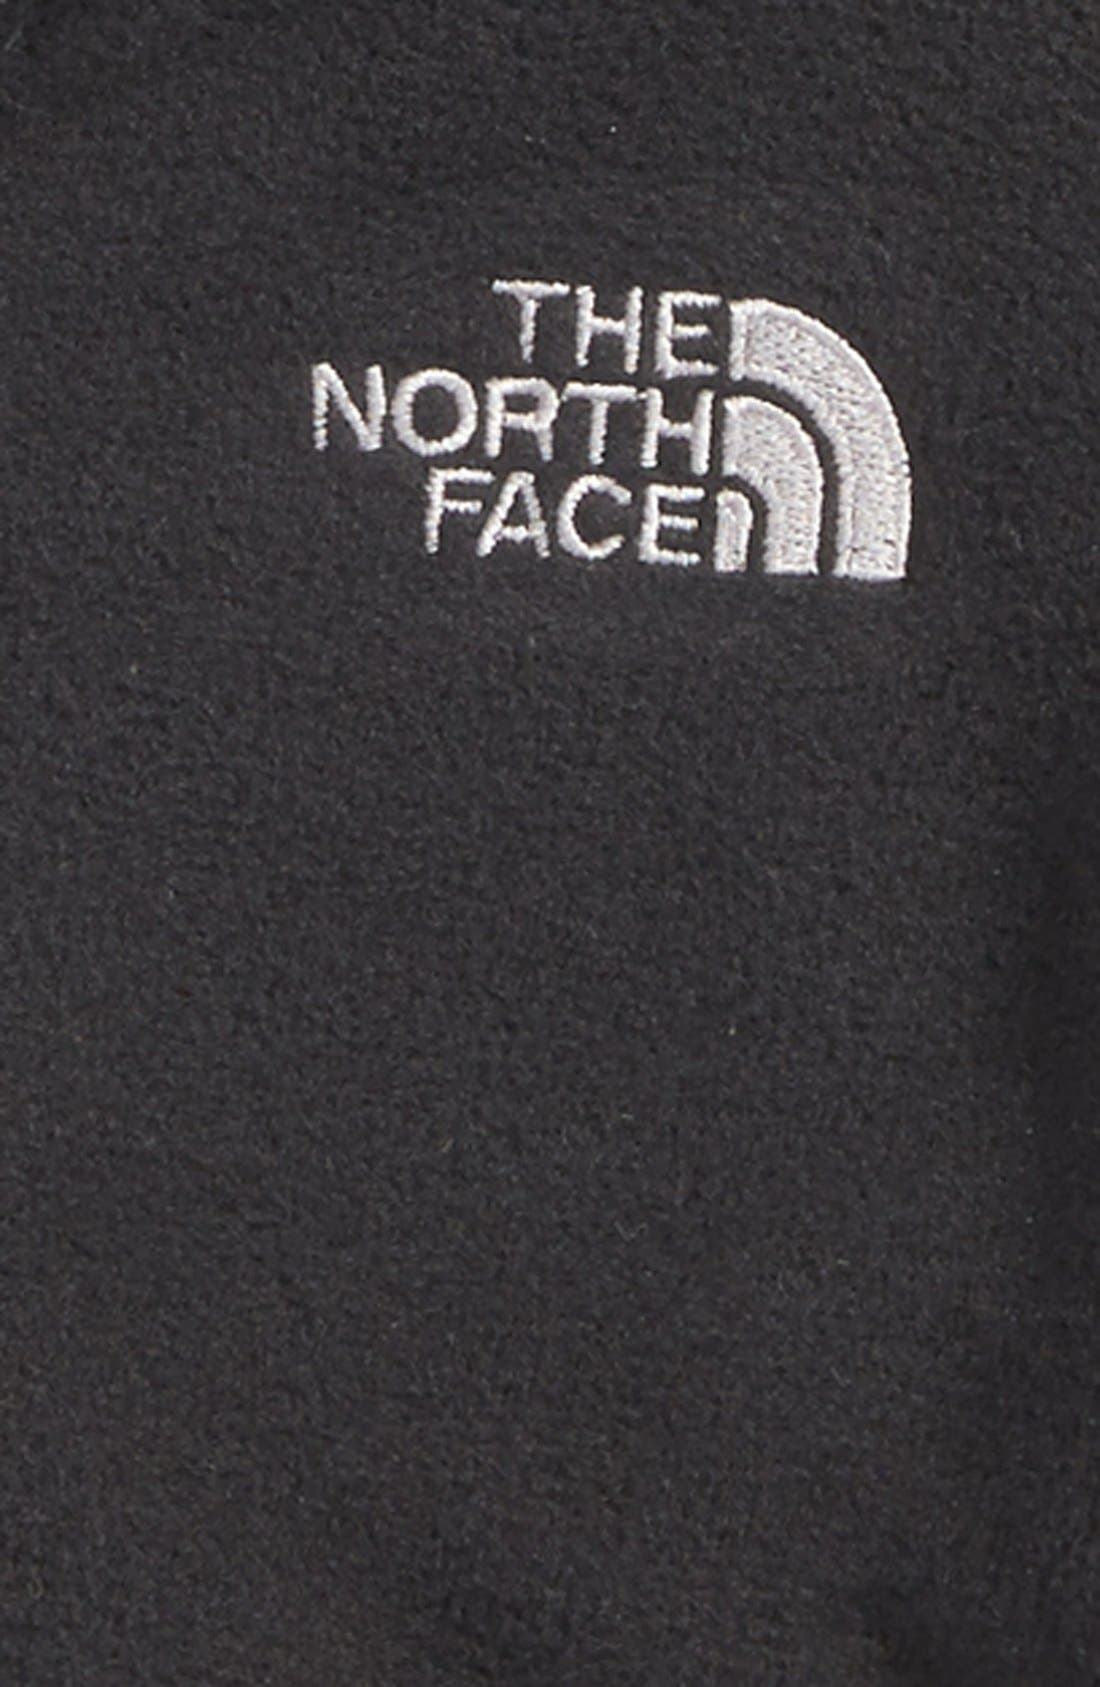 Alternate Image 2  - The North Face 'Glacier' Fleece Jacket (Baby)